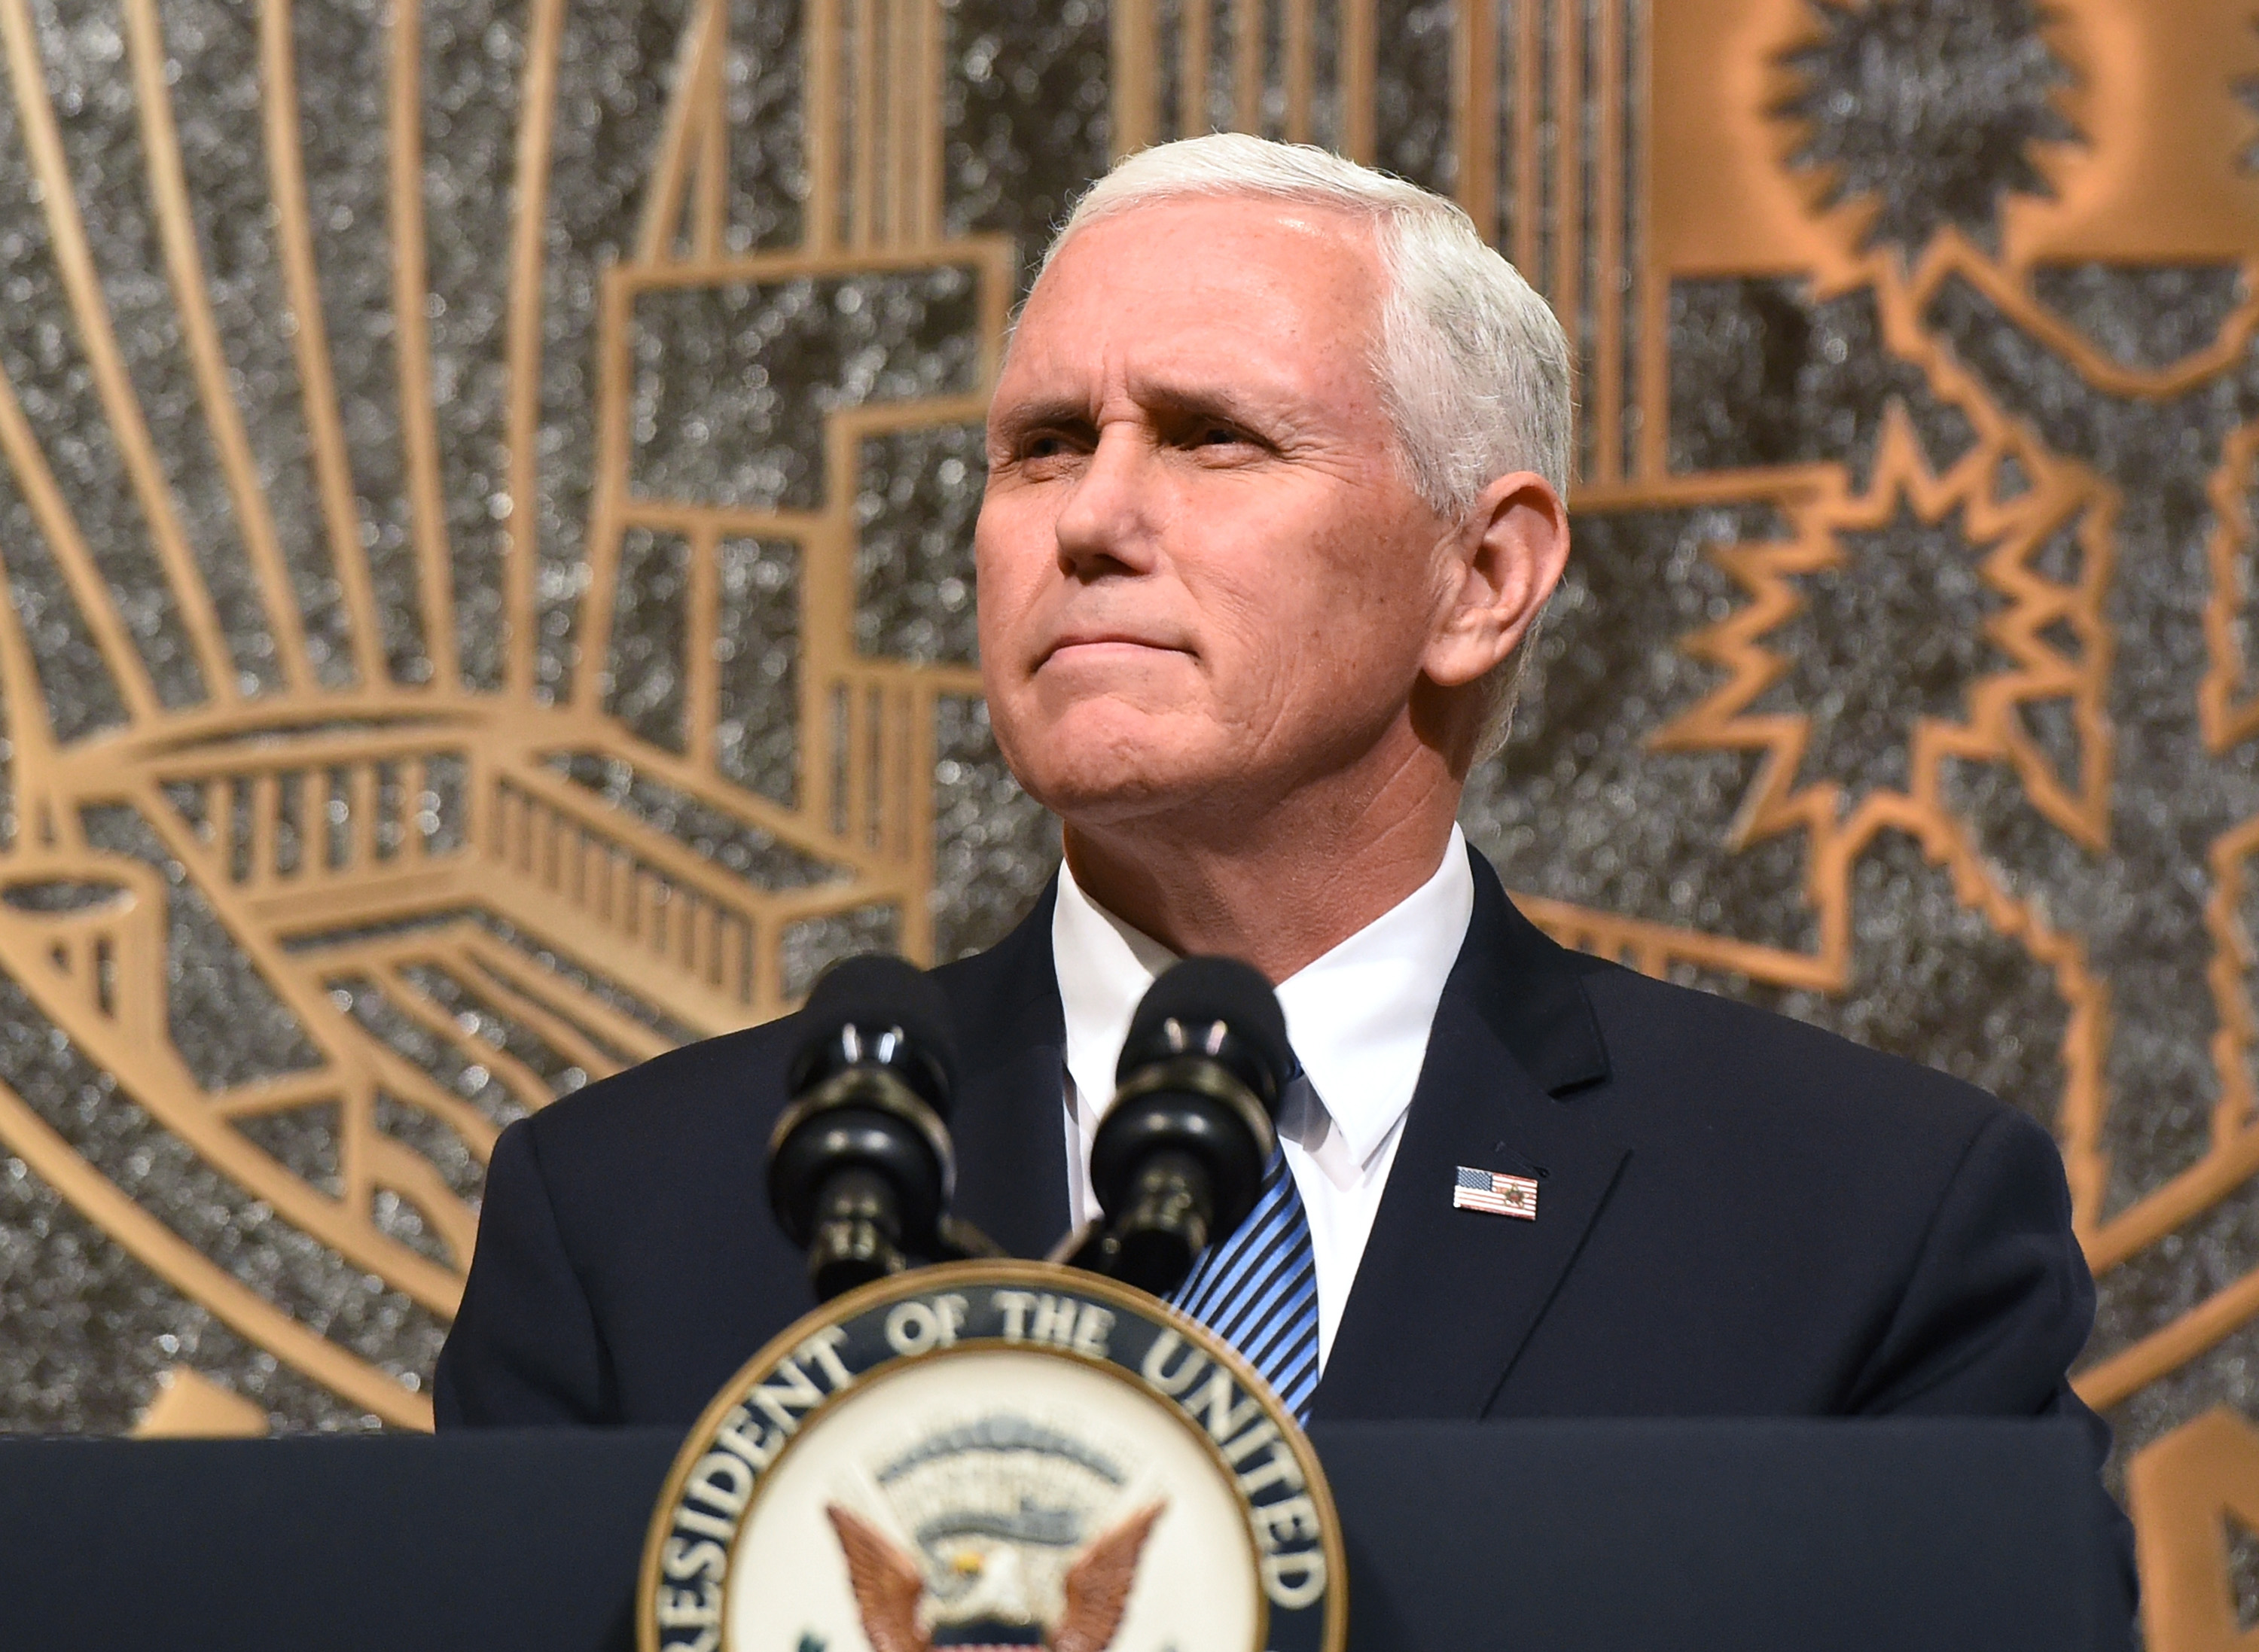 Pence leaves National Football League game after players kneel during anthem